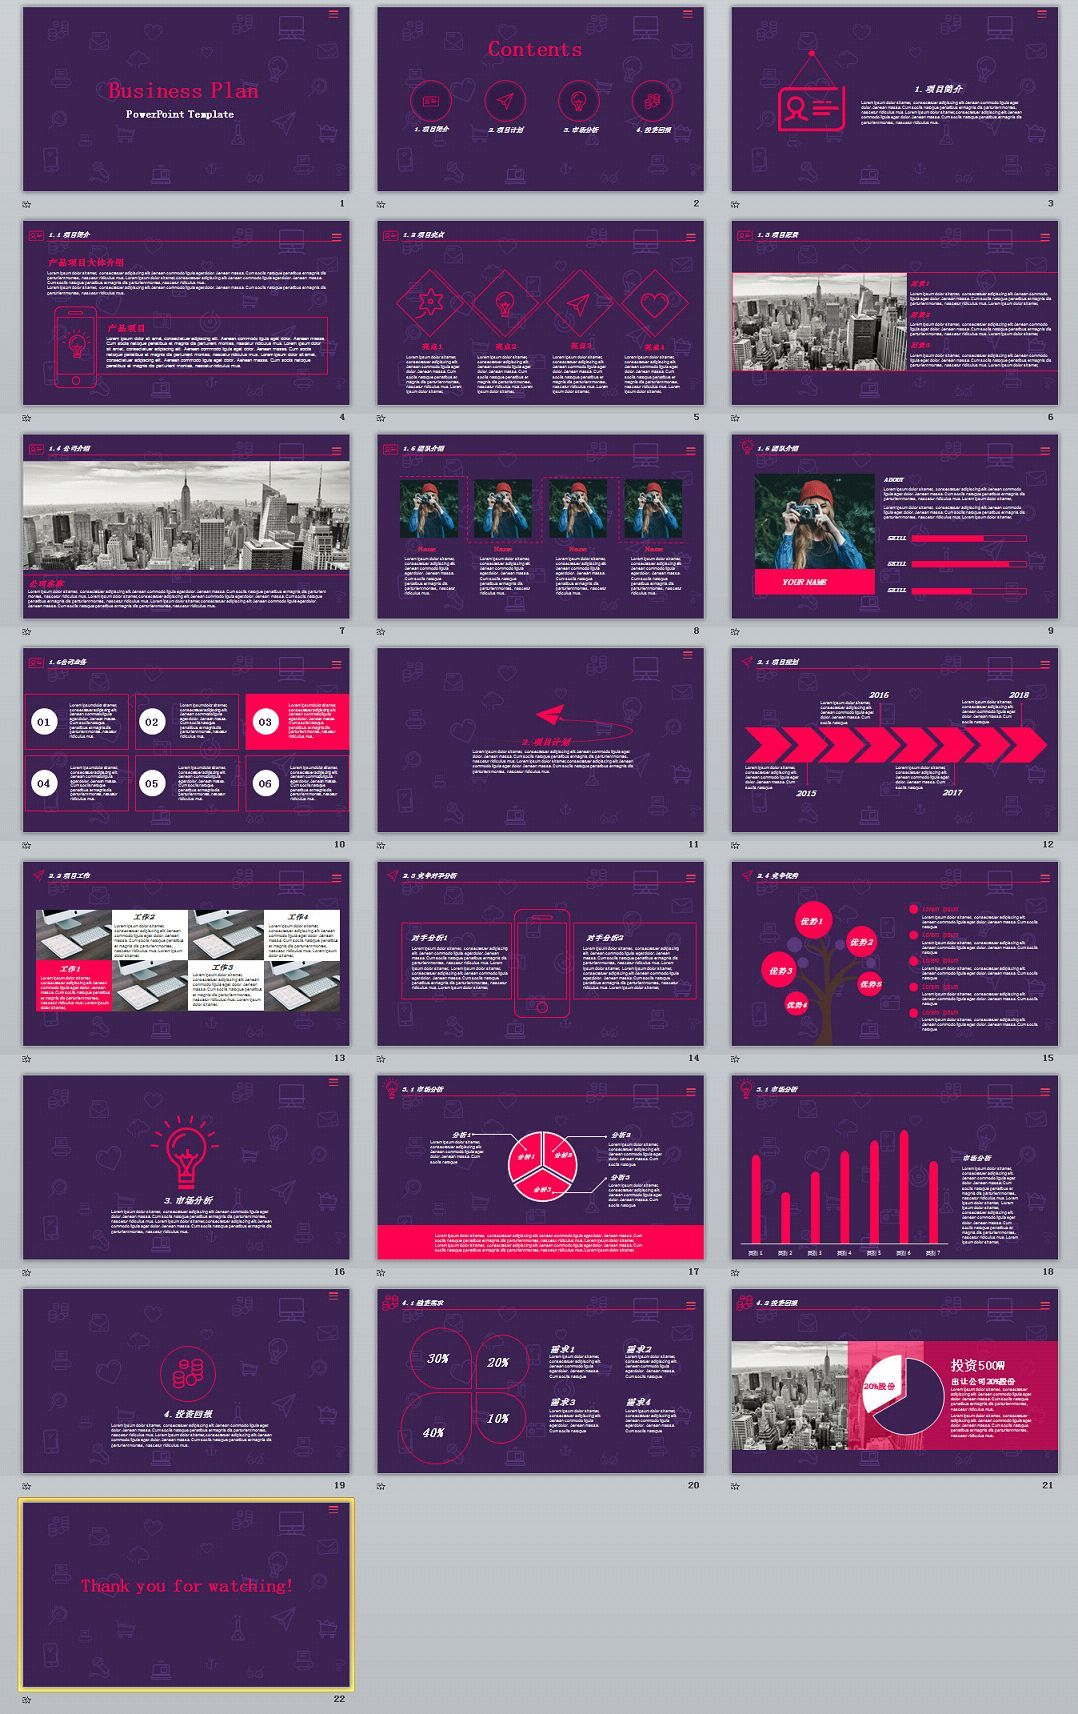 2016 business plan ppt templates the highest quality powerpoint 2016 business plan ppt templates the highest quality powerpoint templates and keynote templates download accmission Image collections